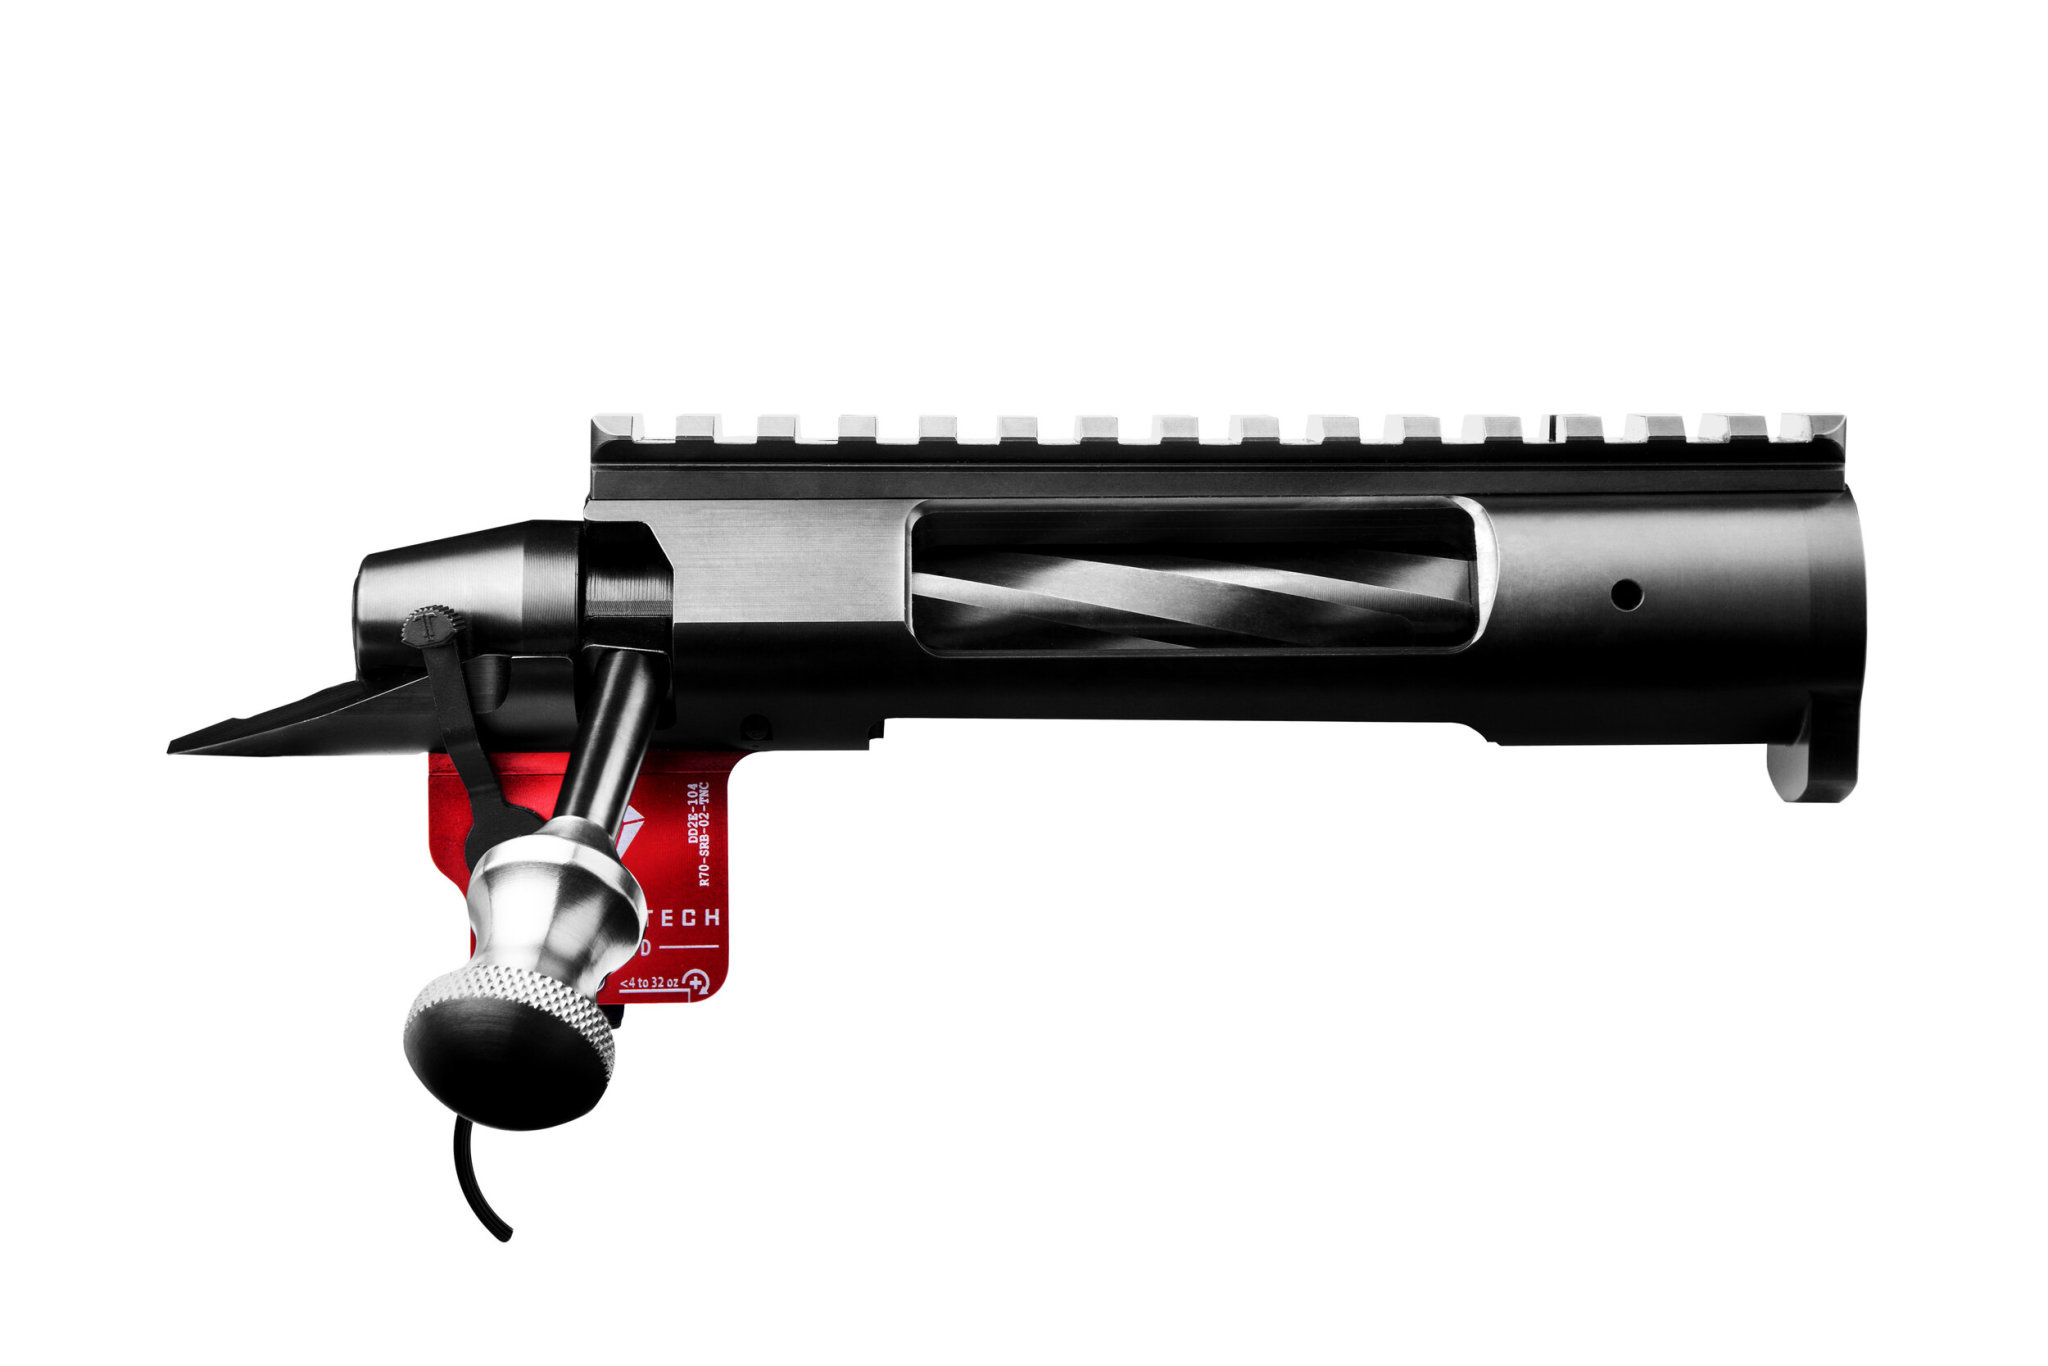 K.S. ARMS K.S. ARMS SAR 3-LUG RIFLE ACTION, SHORT, RH, 308 BF, REPEATER, 20MOA, PULL KNOB